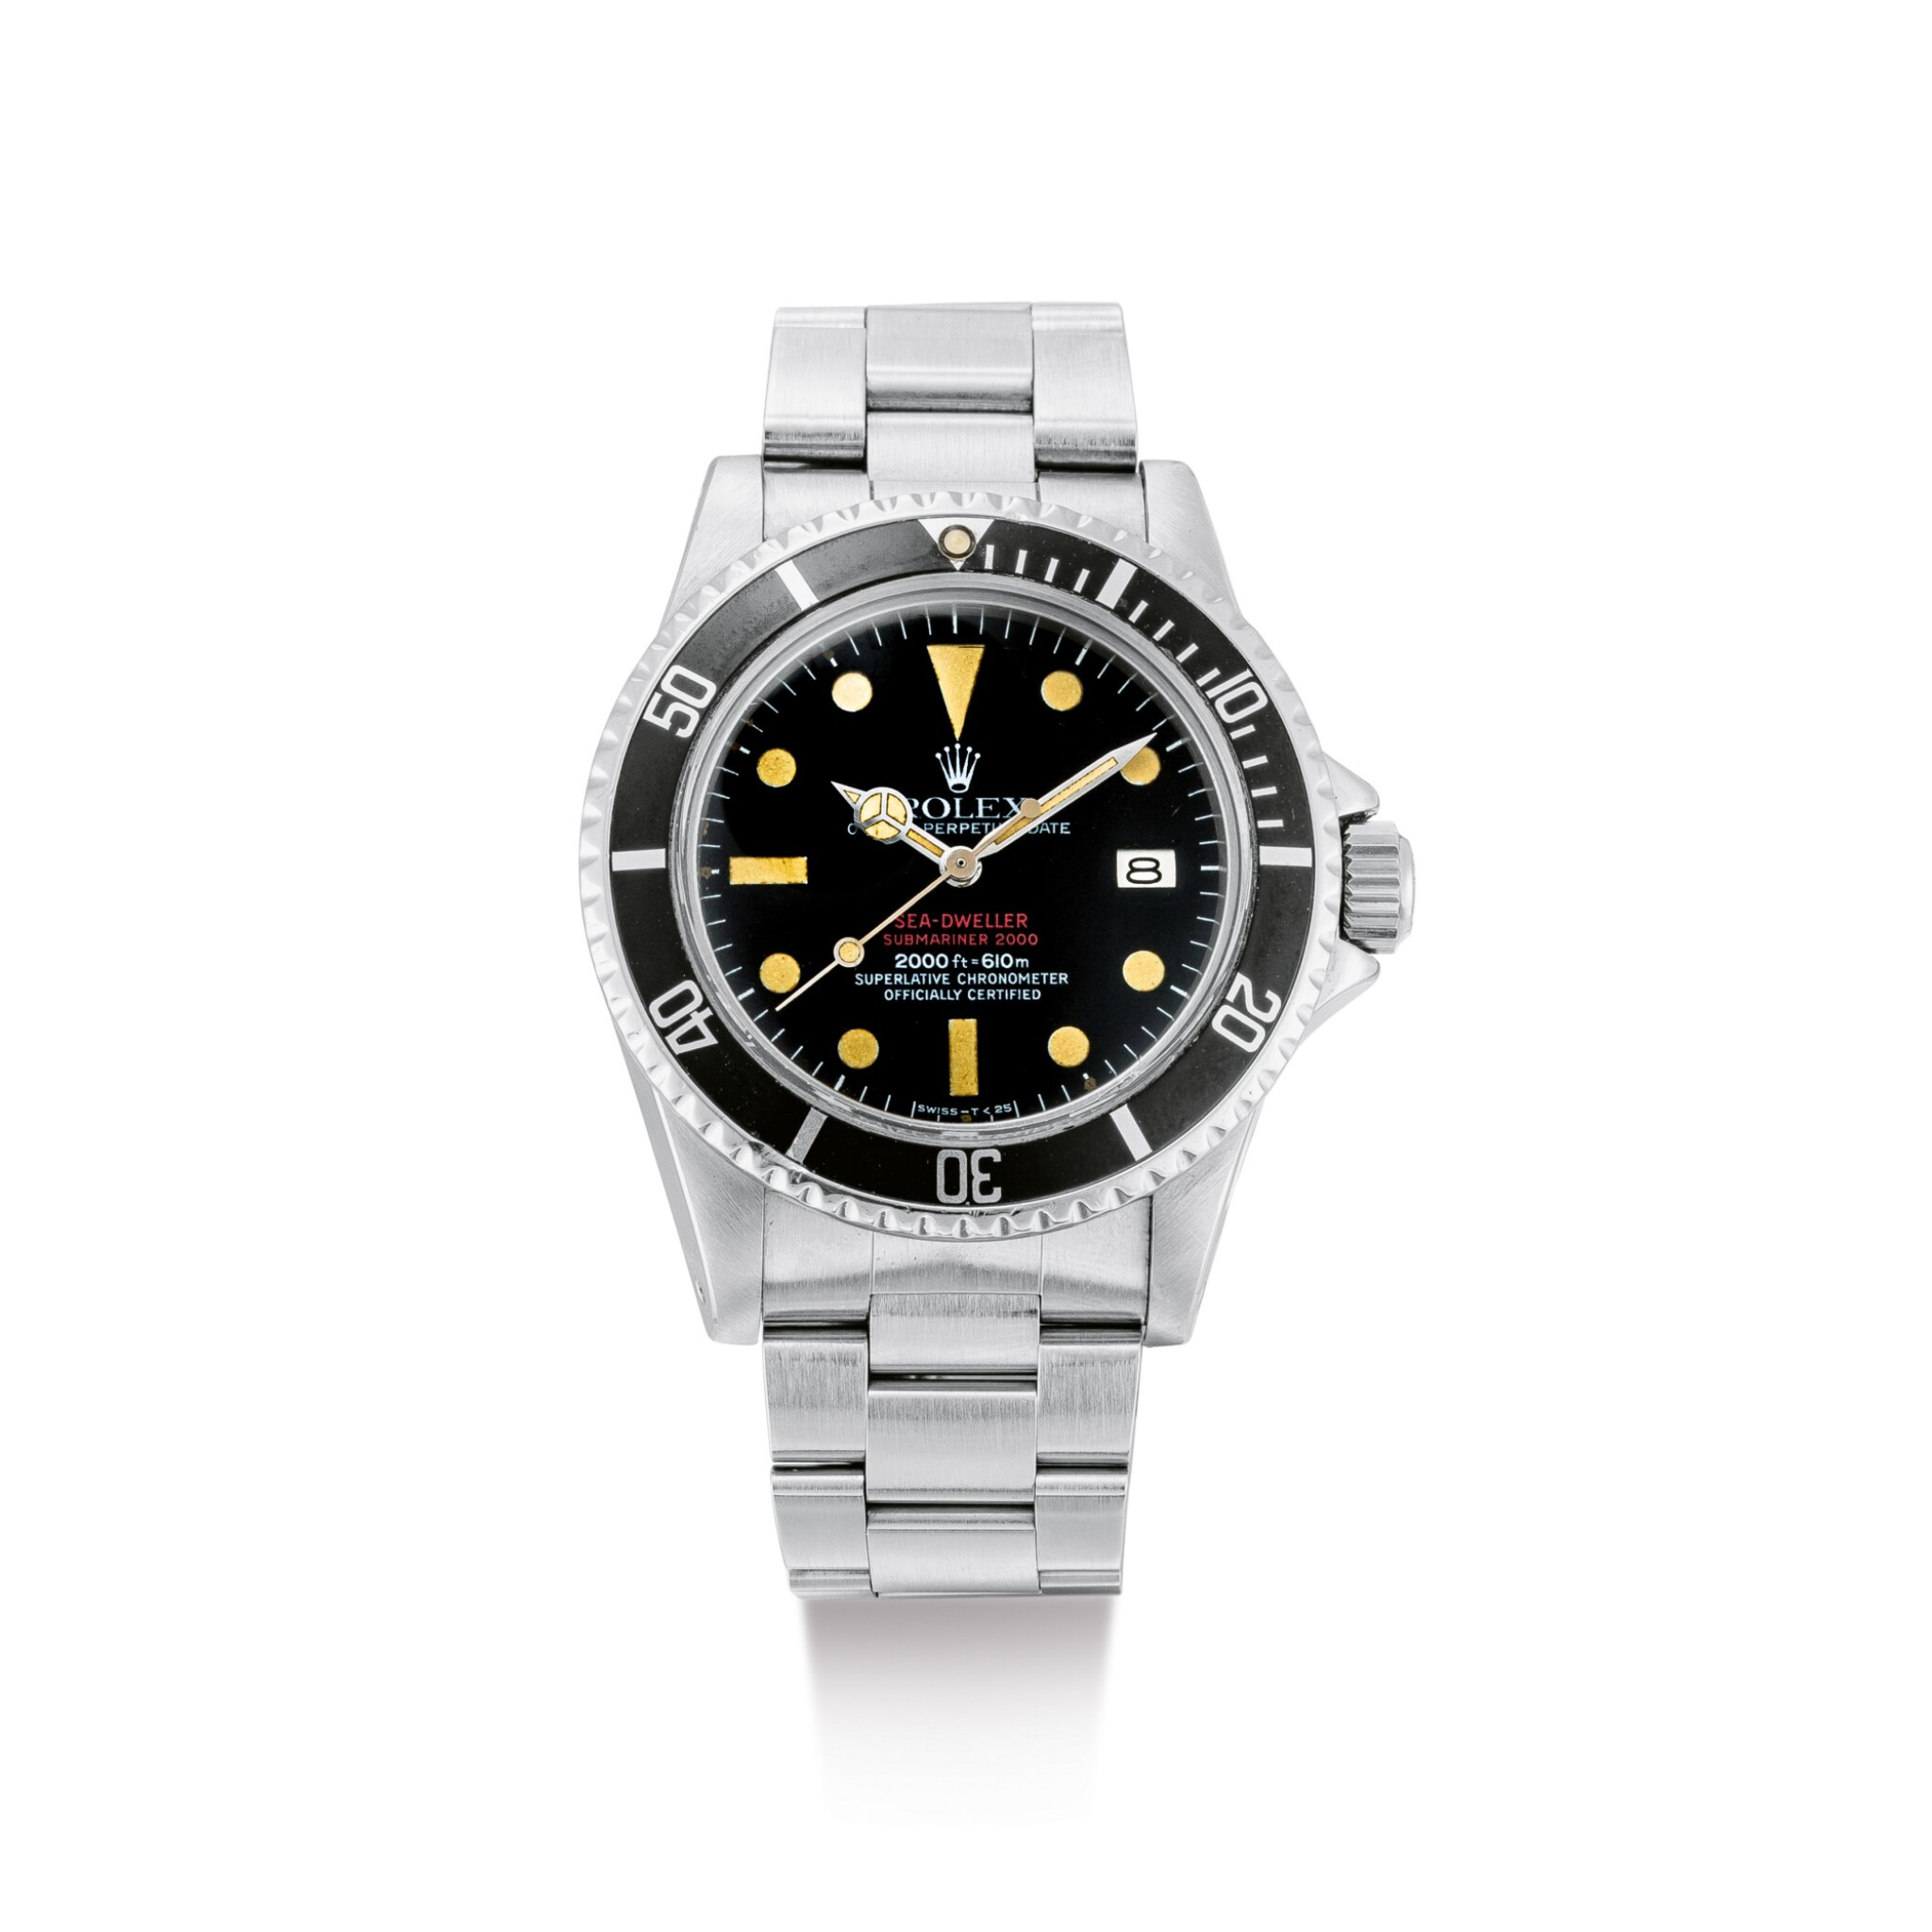 "View 1 of Lot 2111. ROLEX | SEA-DWELLER 'DOUBLE RED', REFERENCE 1665, A STAINLESS STEEL WRISTWATCH WITH DATE AND BRACELET, CIRCA 1976 | 勞力士 | ""Sea-Dweller """"Double Red"""" 型號1665 精鋼鏈帶腕錶,備日期顯示,錶殼編號4190751,約1976年製""."